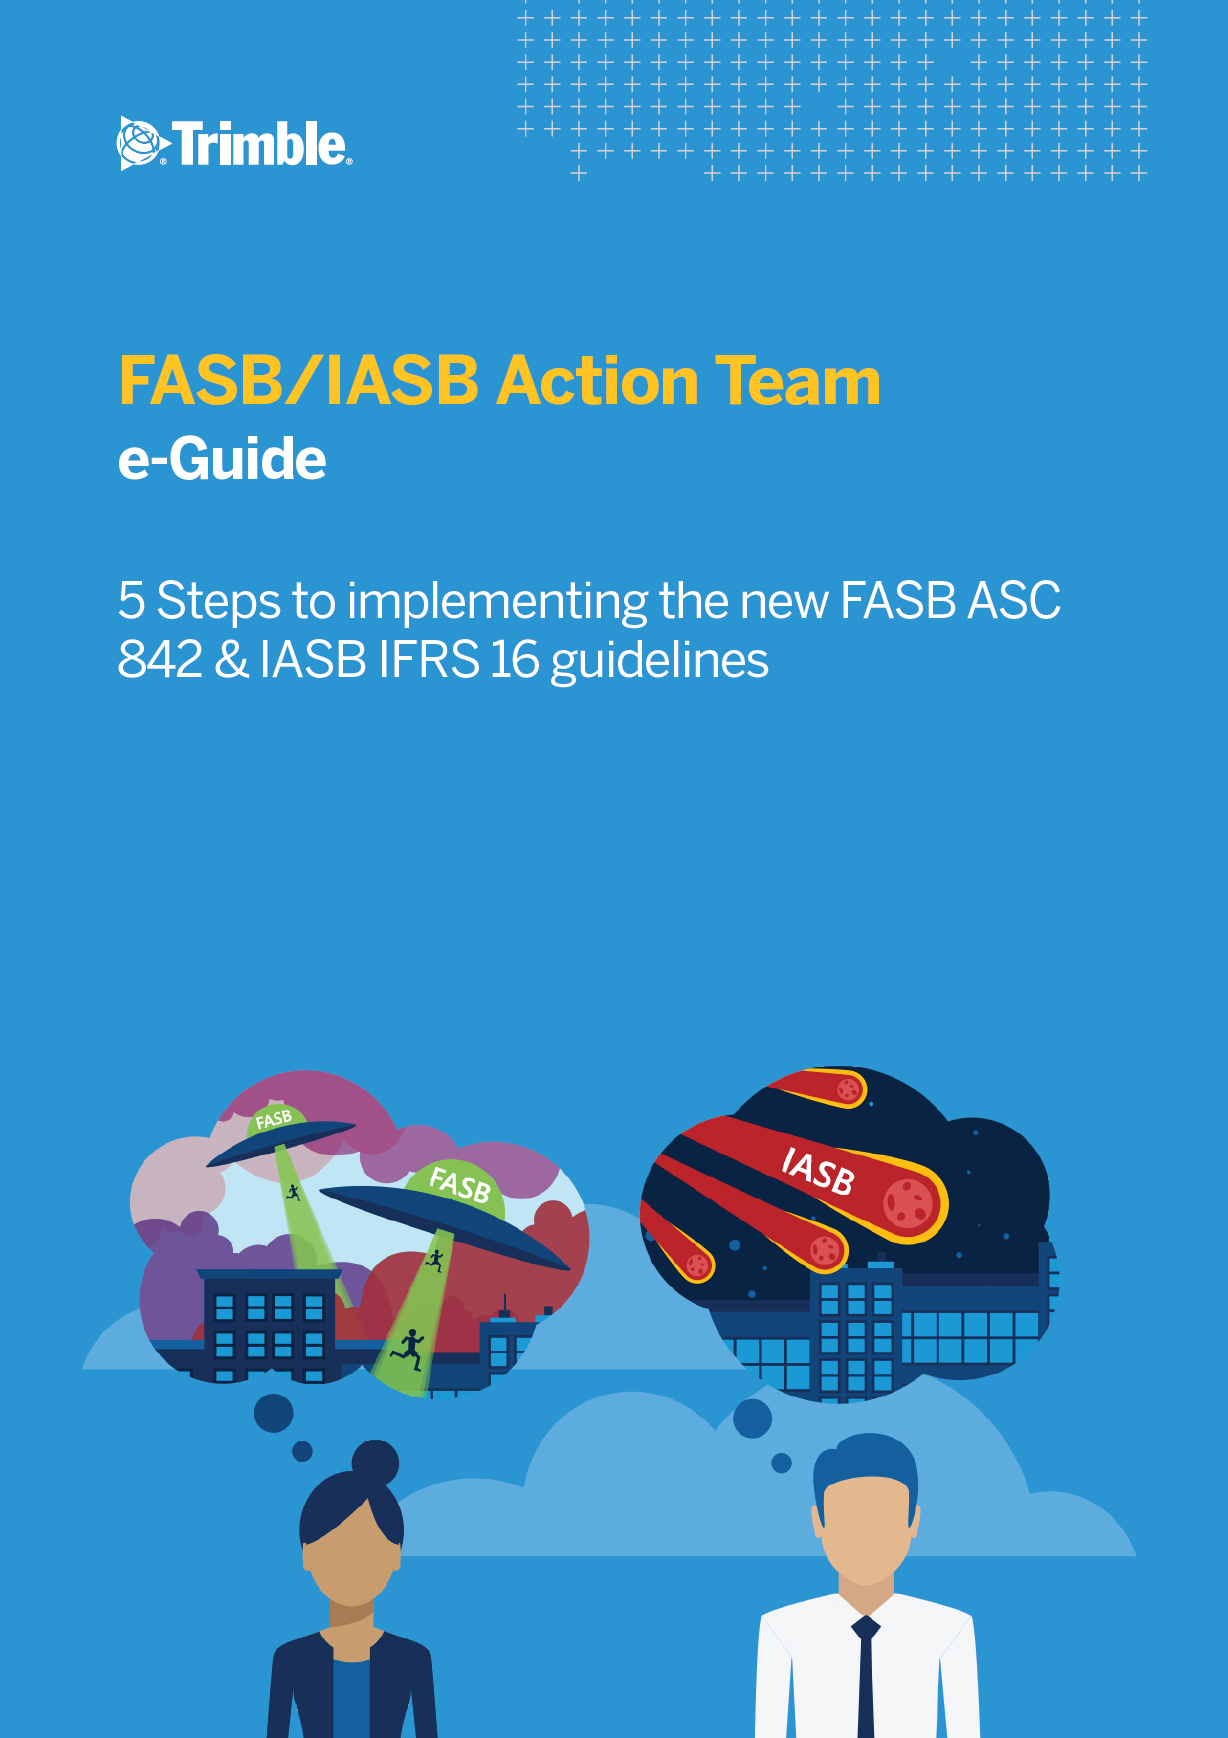 5 Steps to Implementing the New FASB ASC 842 & IASB IFRS 16 Guidelines